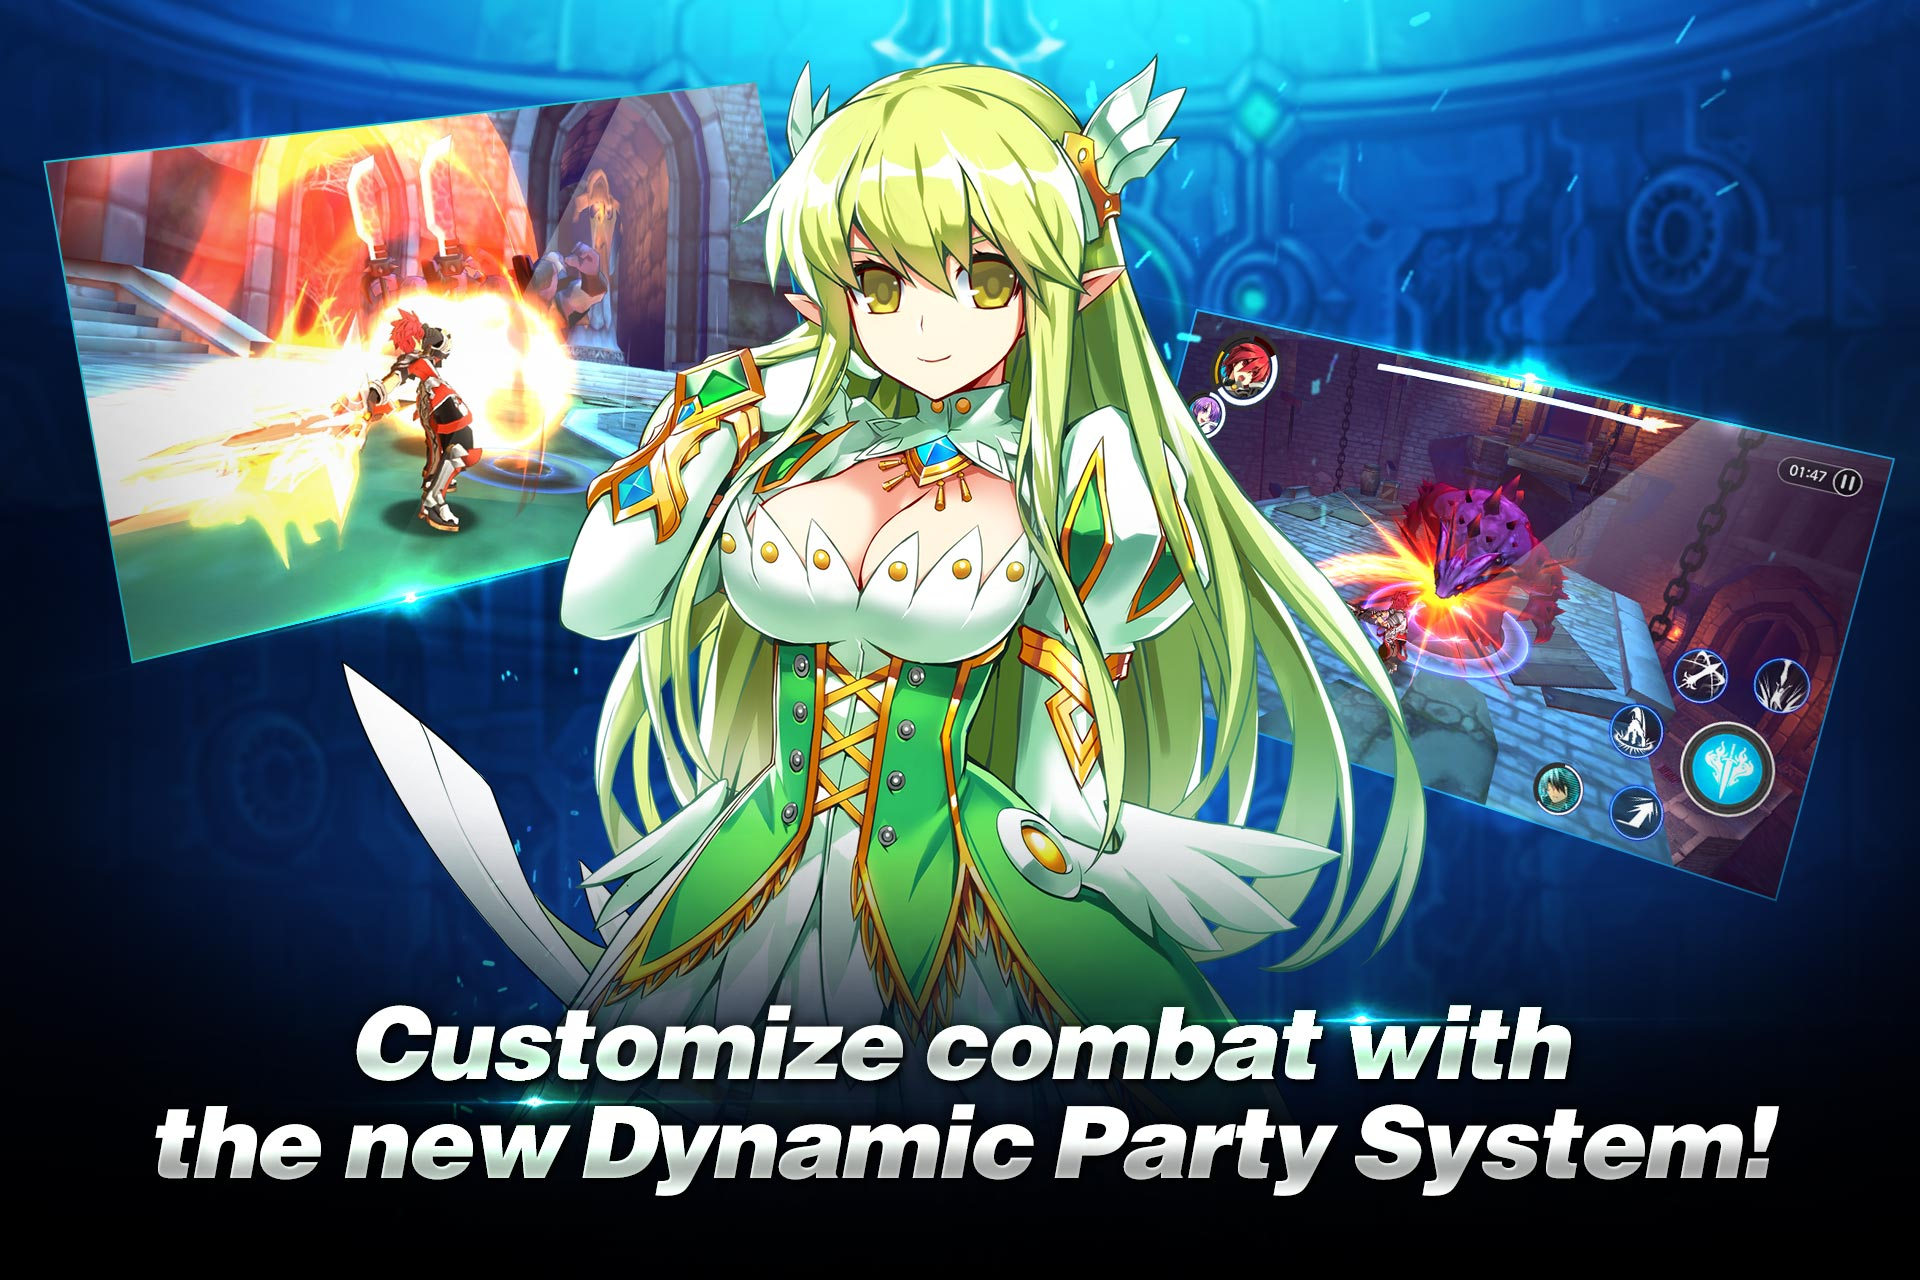 Dynamic Party System Create A Of Courageous Heroes With Unique Talents And Personalities Such As Elsword Aisha Rena Raven Players Can Swap